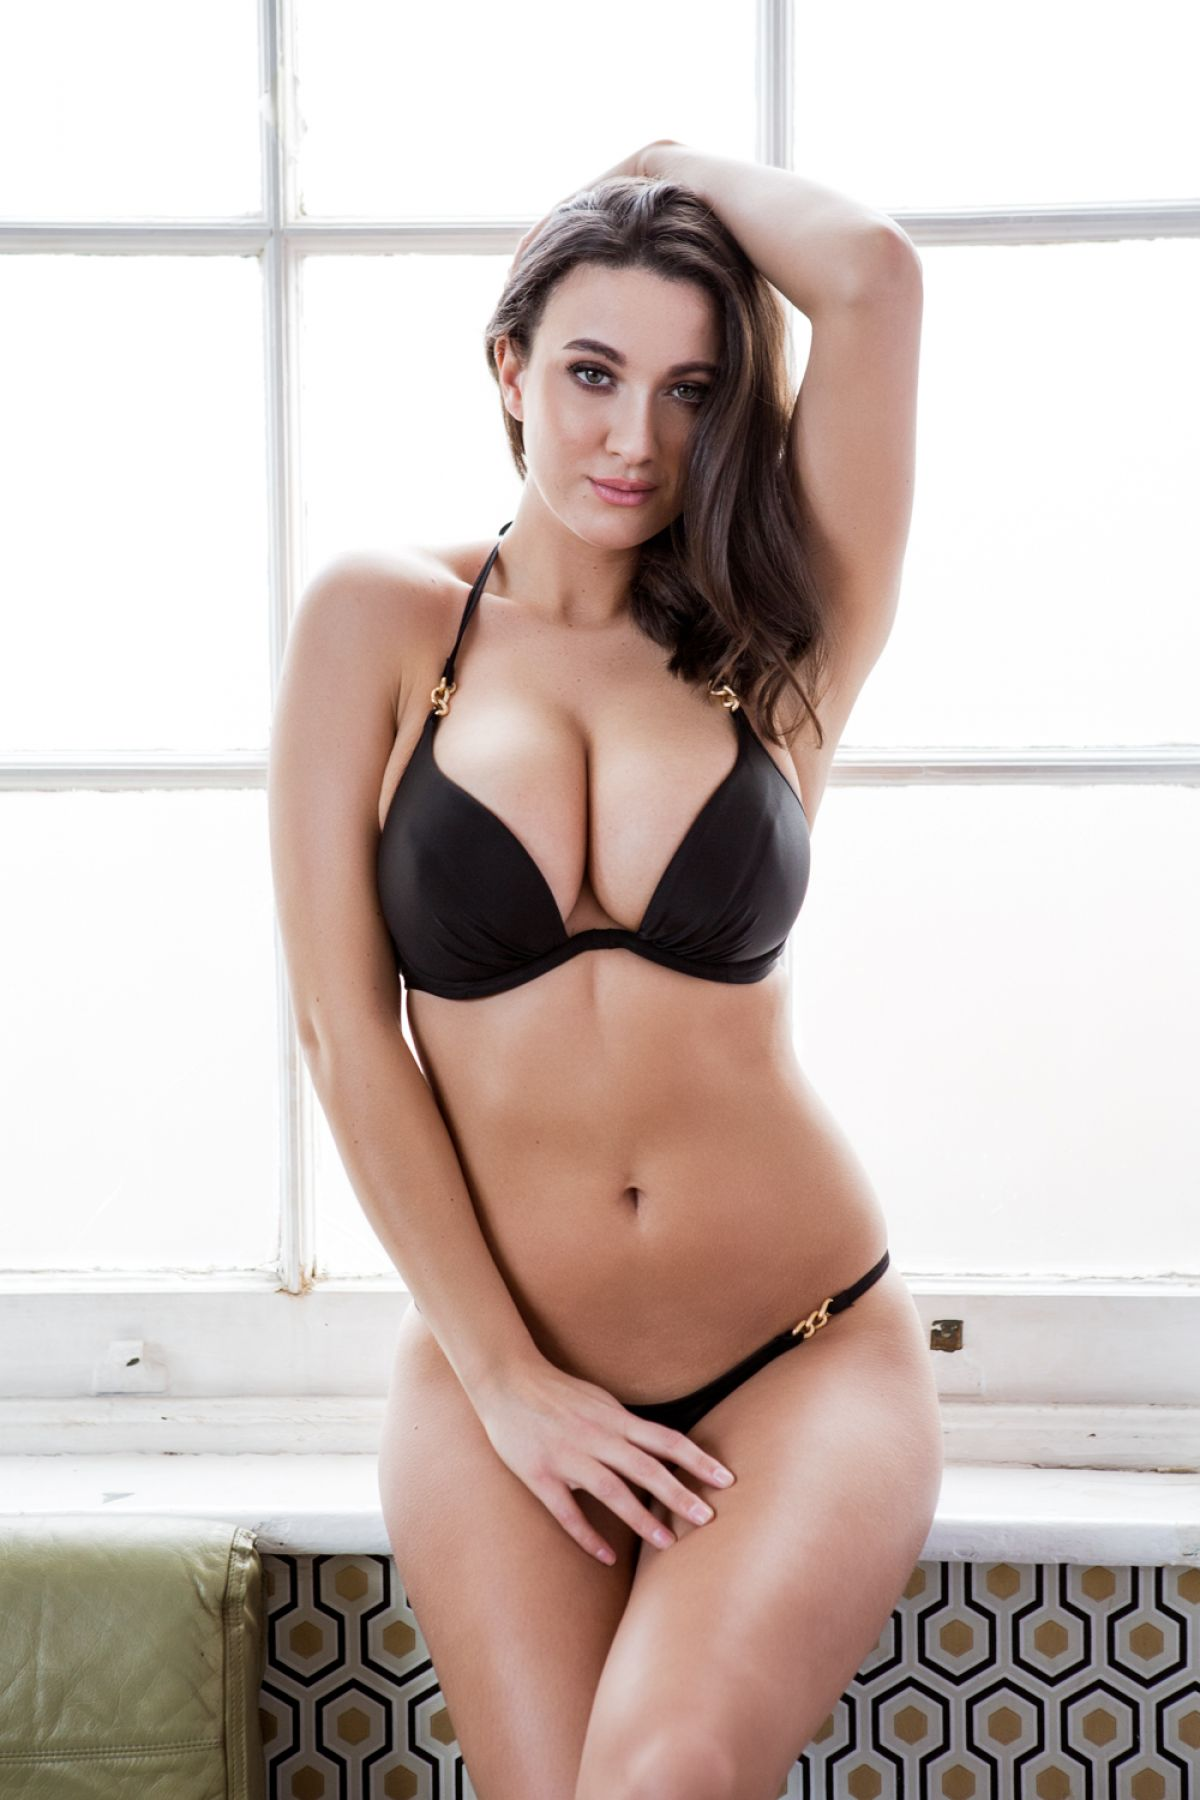 Joey Fisher photos